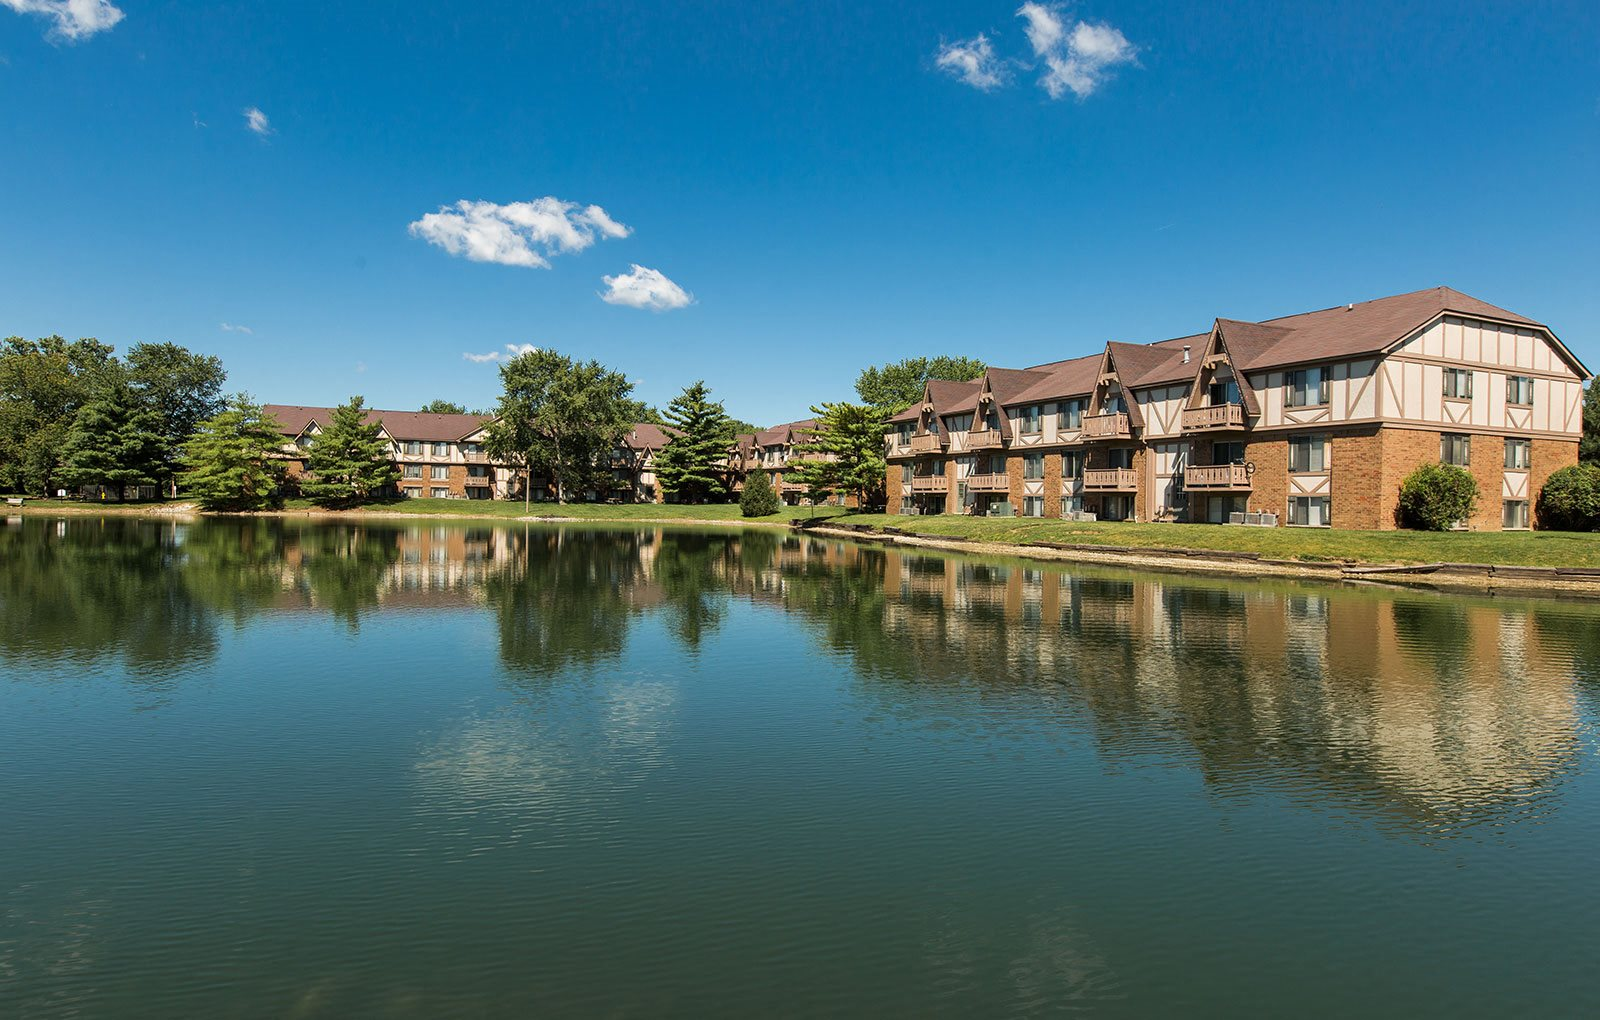 Scenic Lake Within Community at Bavarian Village Apartments, Indiana